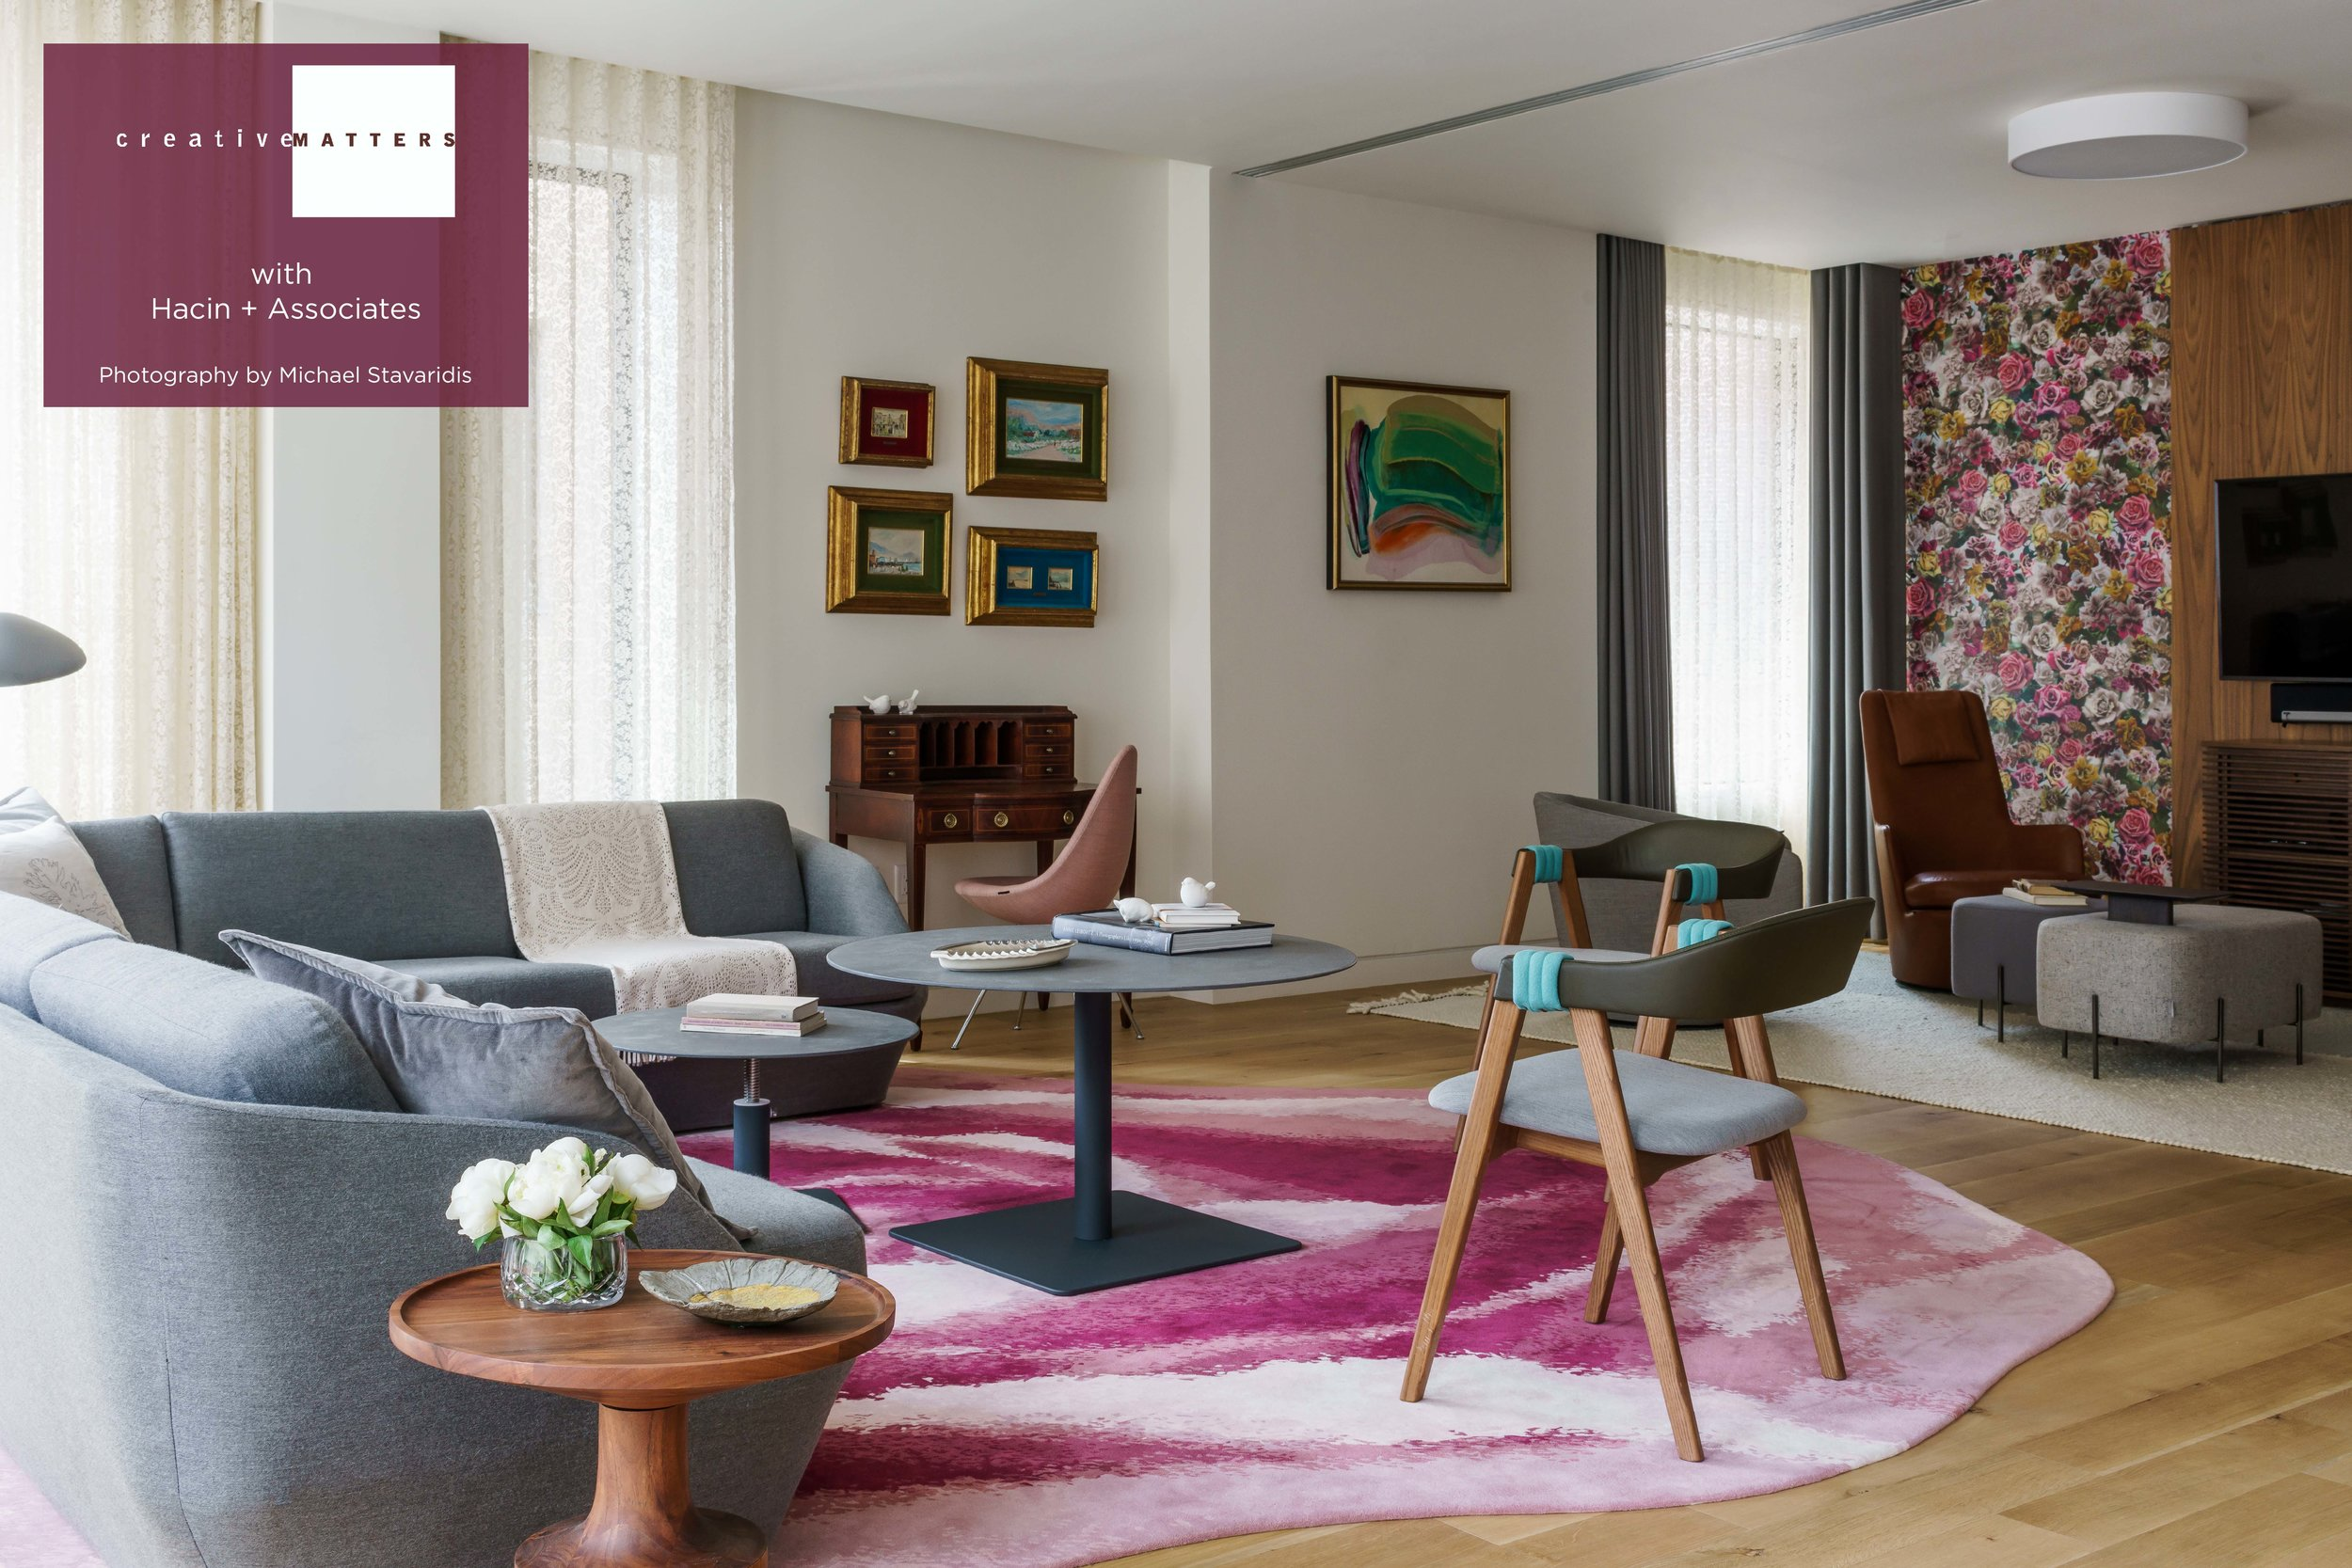 It is always a delight when an interior designer encourages us to create a dynamic and unusual floorcovering. For this Boston project that freedom resulted in a remarkable shaped rug in a rose motif. It's irregular borders offer both custom-made positions for the furniture and provide compelling detail for the space. Its 10 shades of pink transition through ballet slipper, coral and cerise to balance the more masculine cool-toned elements in the room. They also connect to the floral wallpaper in the lounge area, and set the colour for other accent pieces such as the pink drop chair and a berry-hue rug in the bedroom.  Project: shaped rug for Boston living room Rug: 100% wool handtufted in Thailand Interior Designer: Hacin + Associates Creative Matters Designer: Leah Phillips